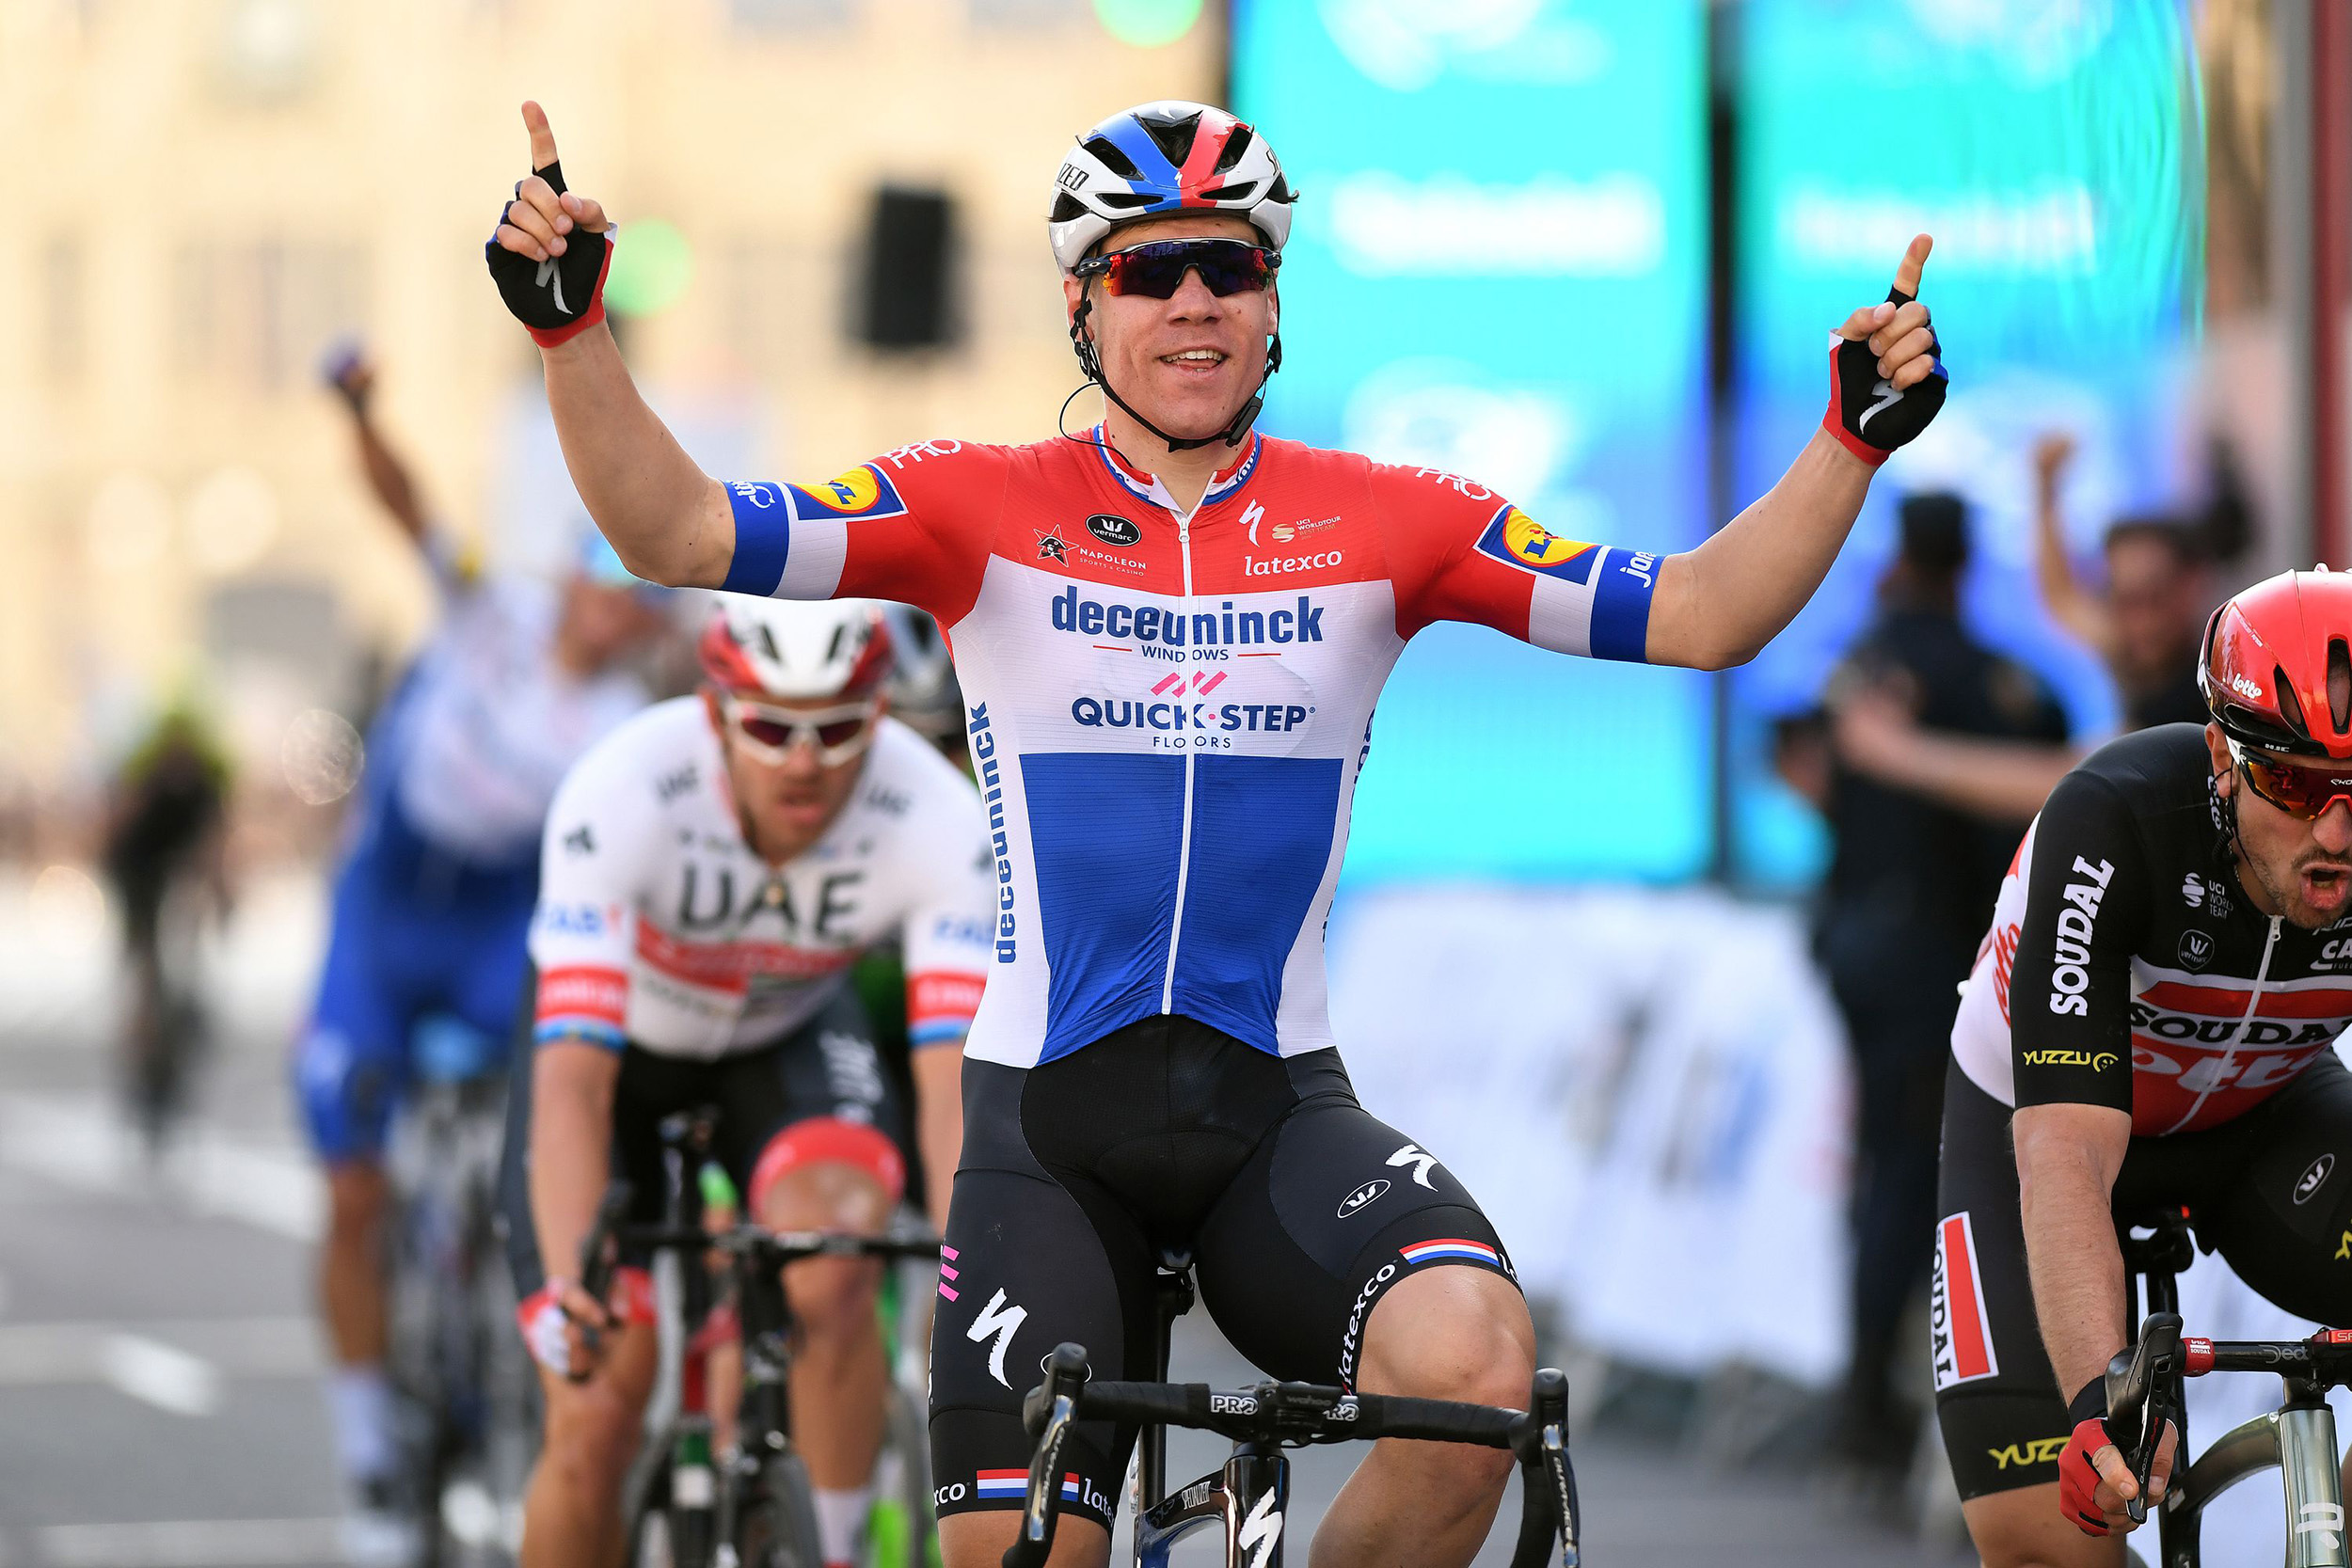 VALENCIA, SPAIN - FEBRUARY 09: Arrival / Fabio Jakobsen of The Netherlands and Team Deceuninck - Quick-Step / Celebration / during the 71st Volta a la Comunitat Valenciana 2020, Stage 5 a 97,7km stage from Paterna - Valencia / @VueltaCV / #VCV2020 / on February 09, 2020 in Valencia, Spain. (Photo by David Ramos/Getty Images)